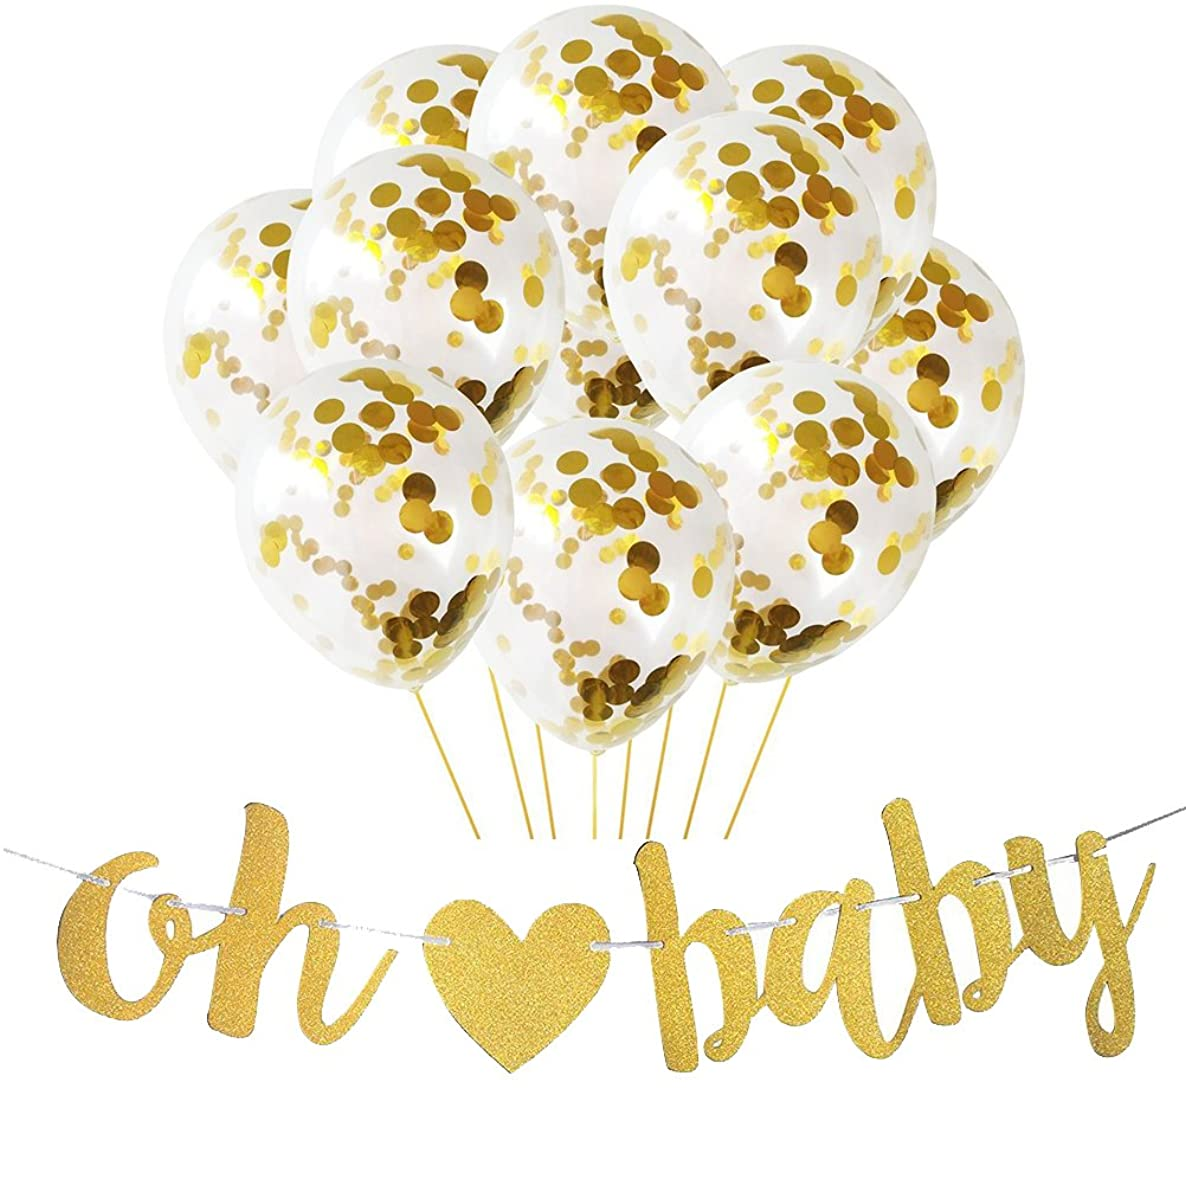 Baby Shower Banner,Sogorge 10pcs Baby Balloons and OH BABY Gold Glitter Banner with Heart for Baby Shower Party Decorations